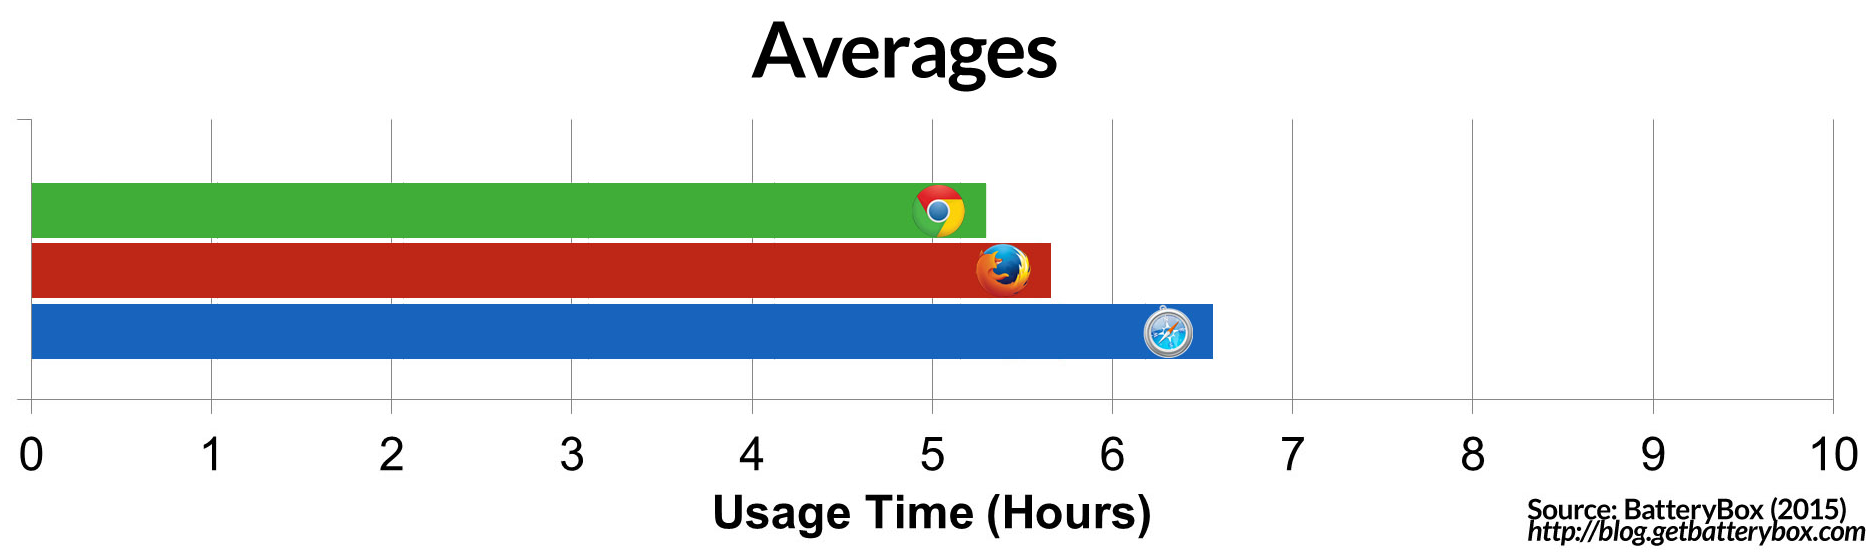 Averages-browser-accu